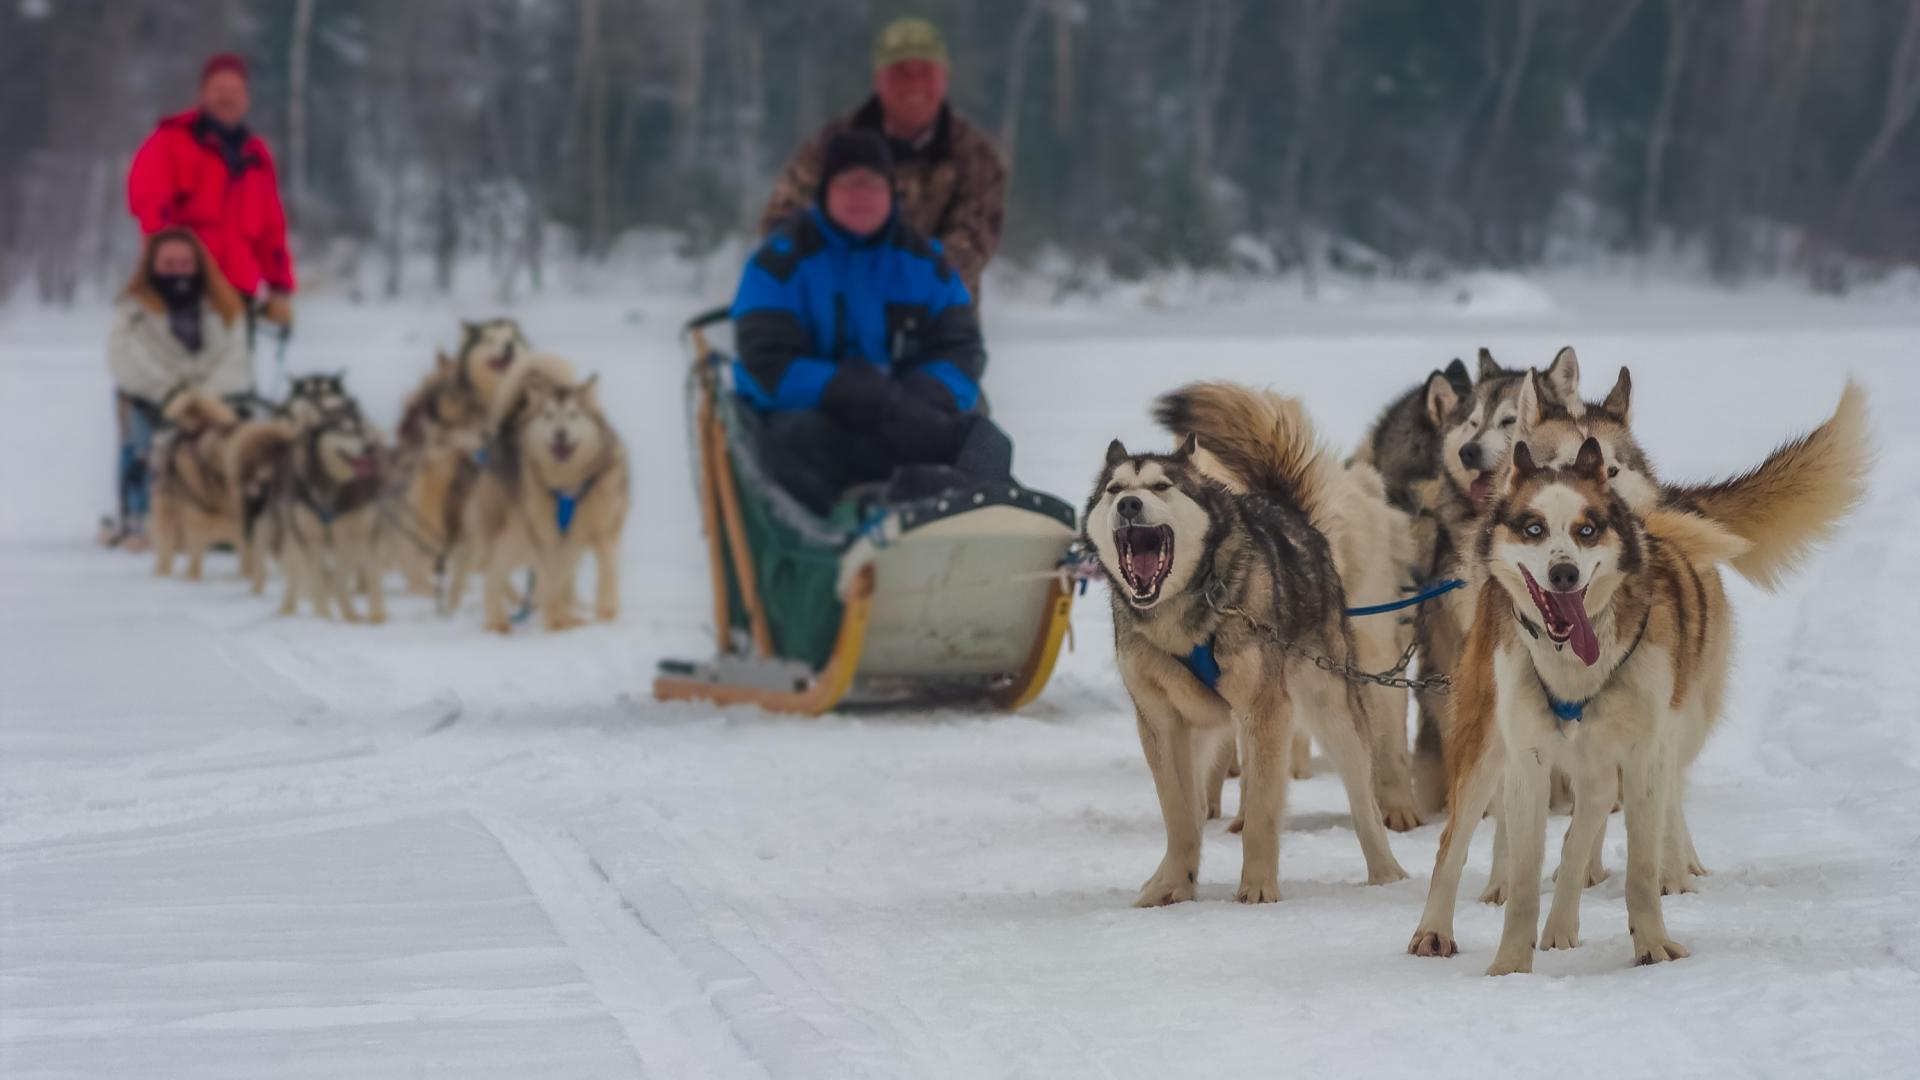 Two teams of dog sledders near Ely, Minnesota